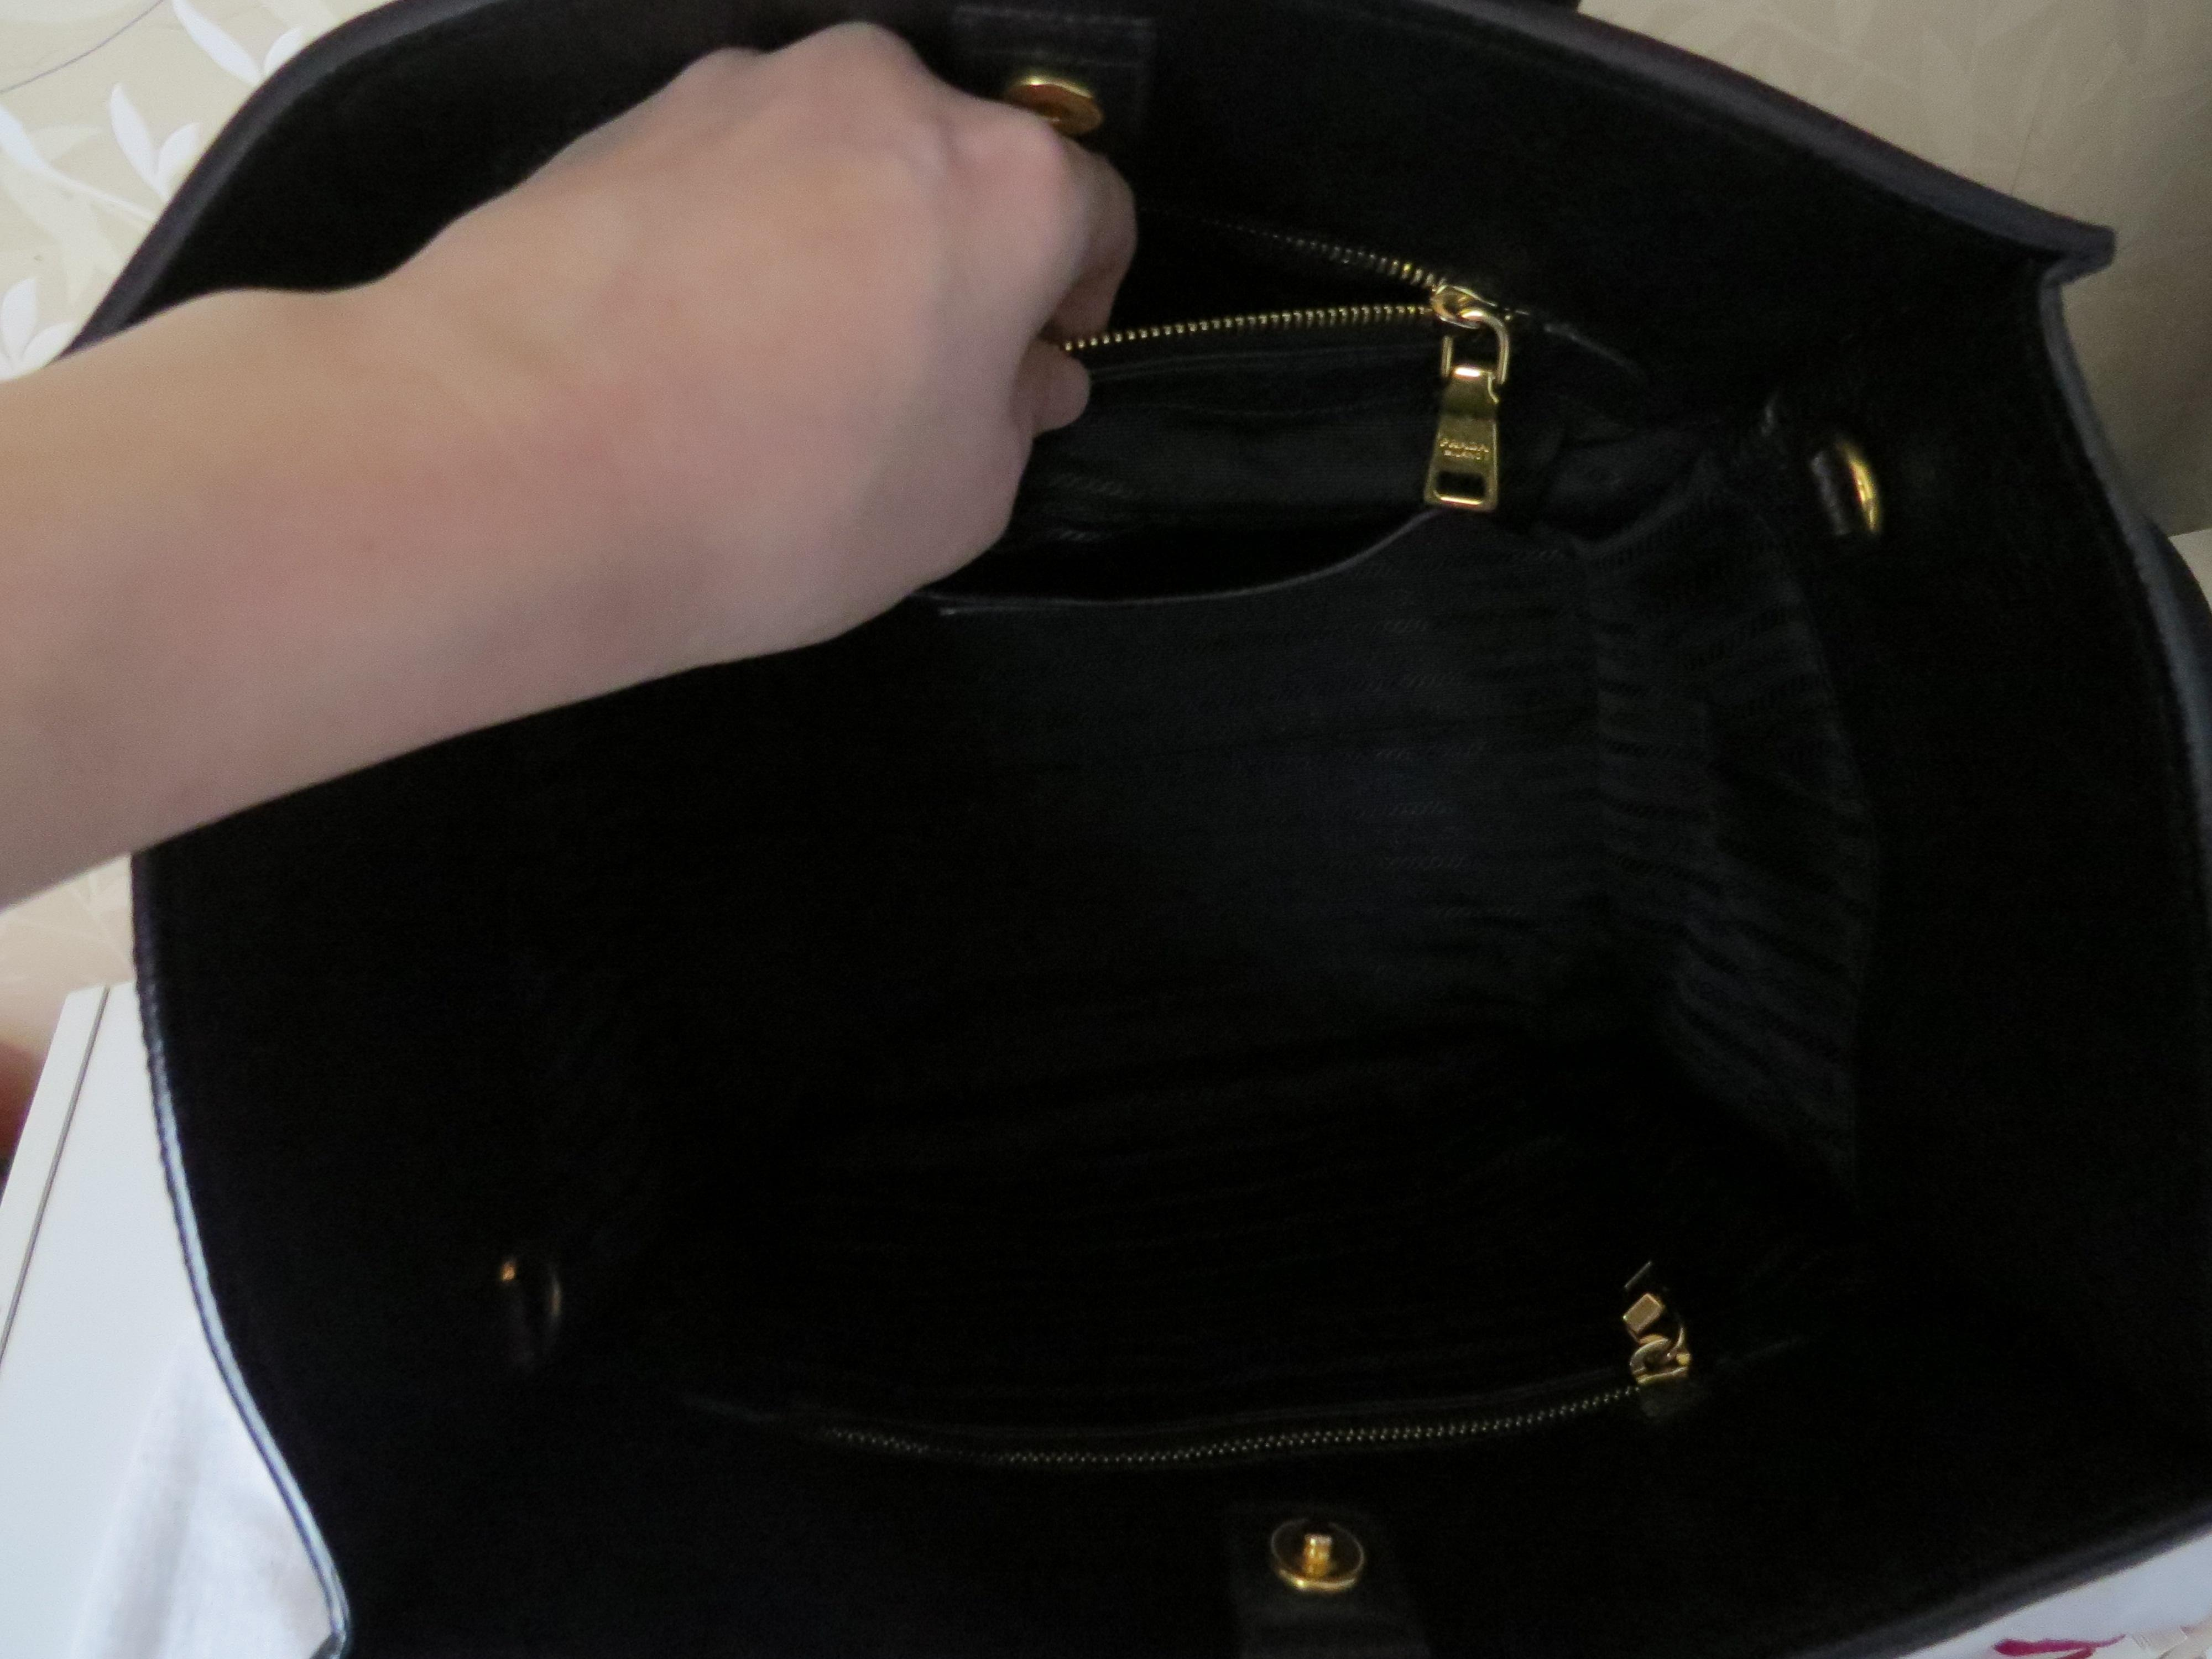 37eb833af8ae35 1234567891011 50c59 b4176; official store leather black prada vit tote  bn2626 daino pebbled 6wxwa e21cd 6c6b0